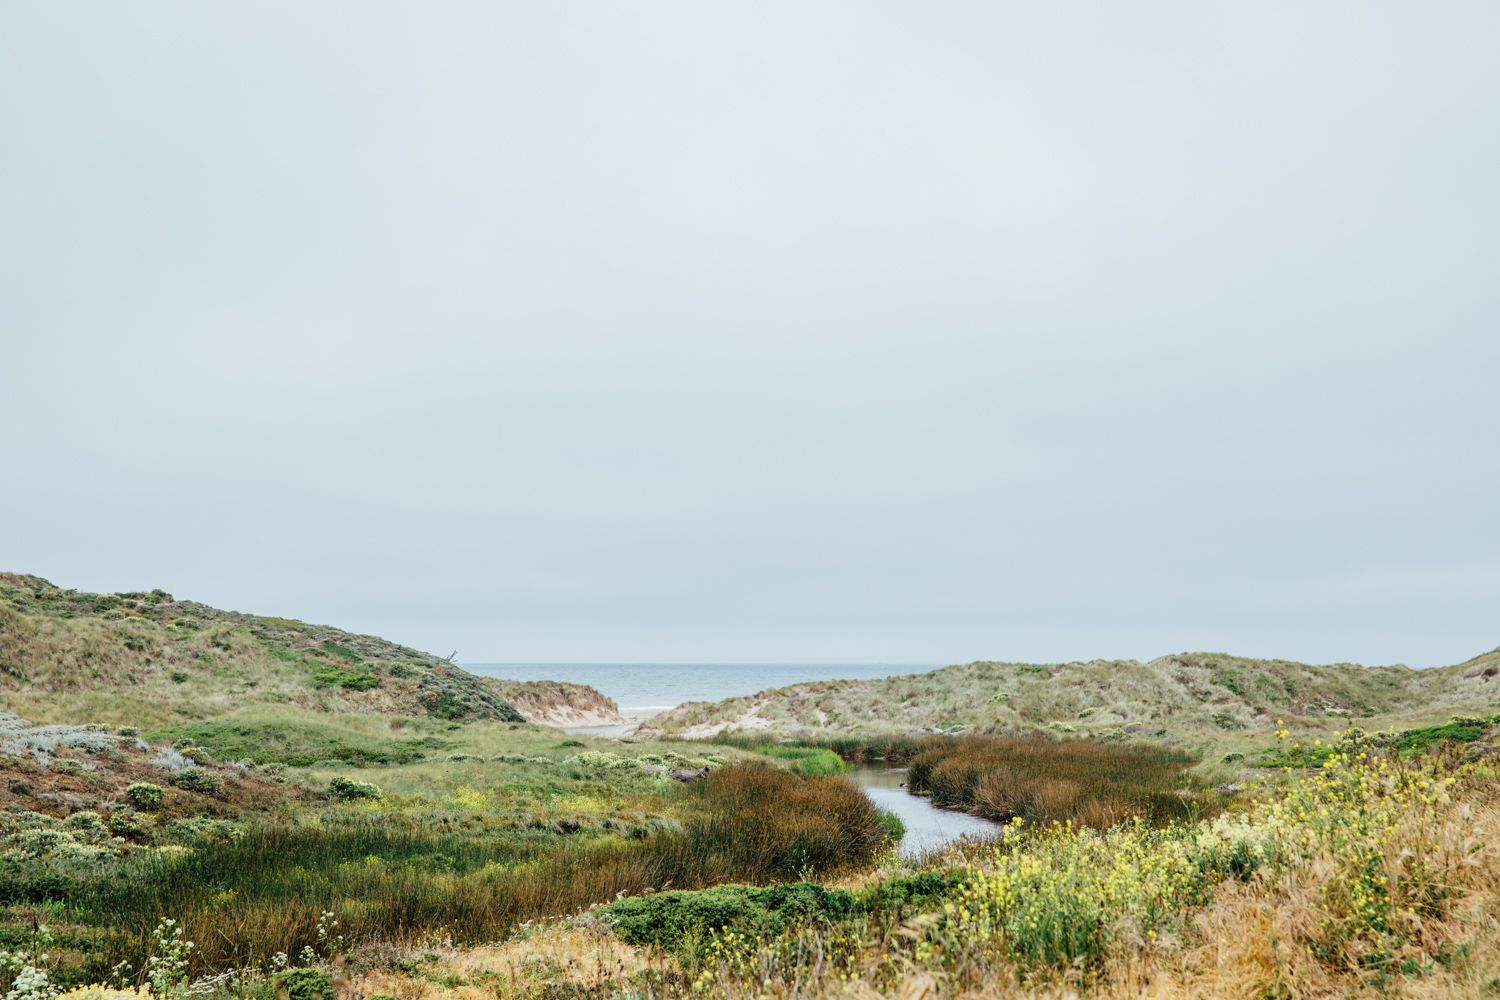 Favorite destination on my California Road trip: Tomales Bay - Kehoe Beach | Emilie Waugh Photography